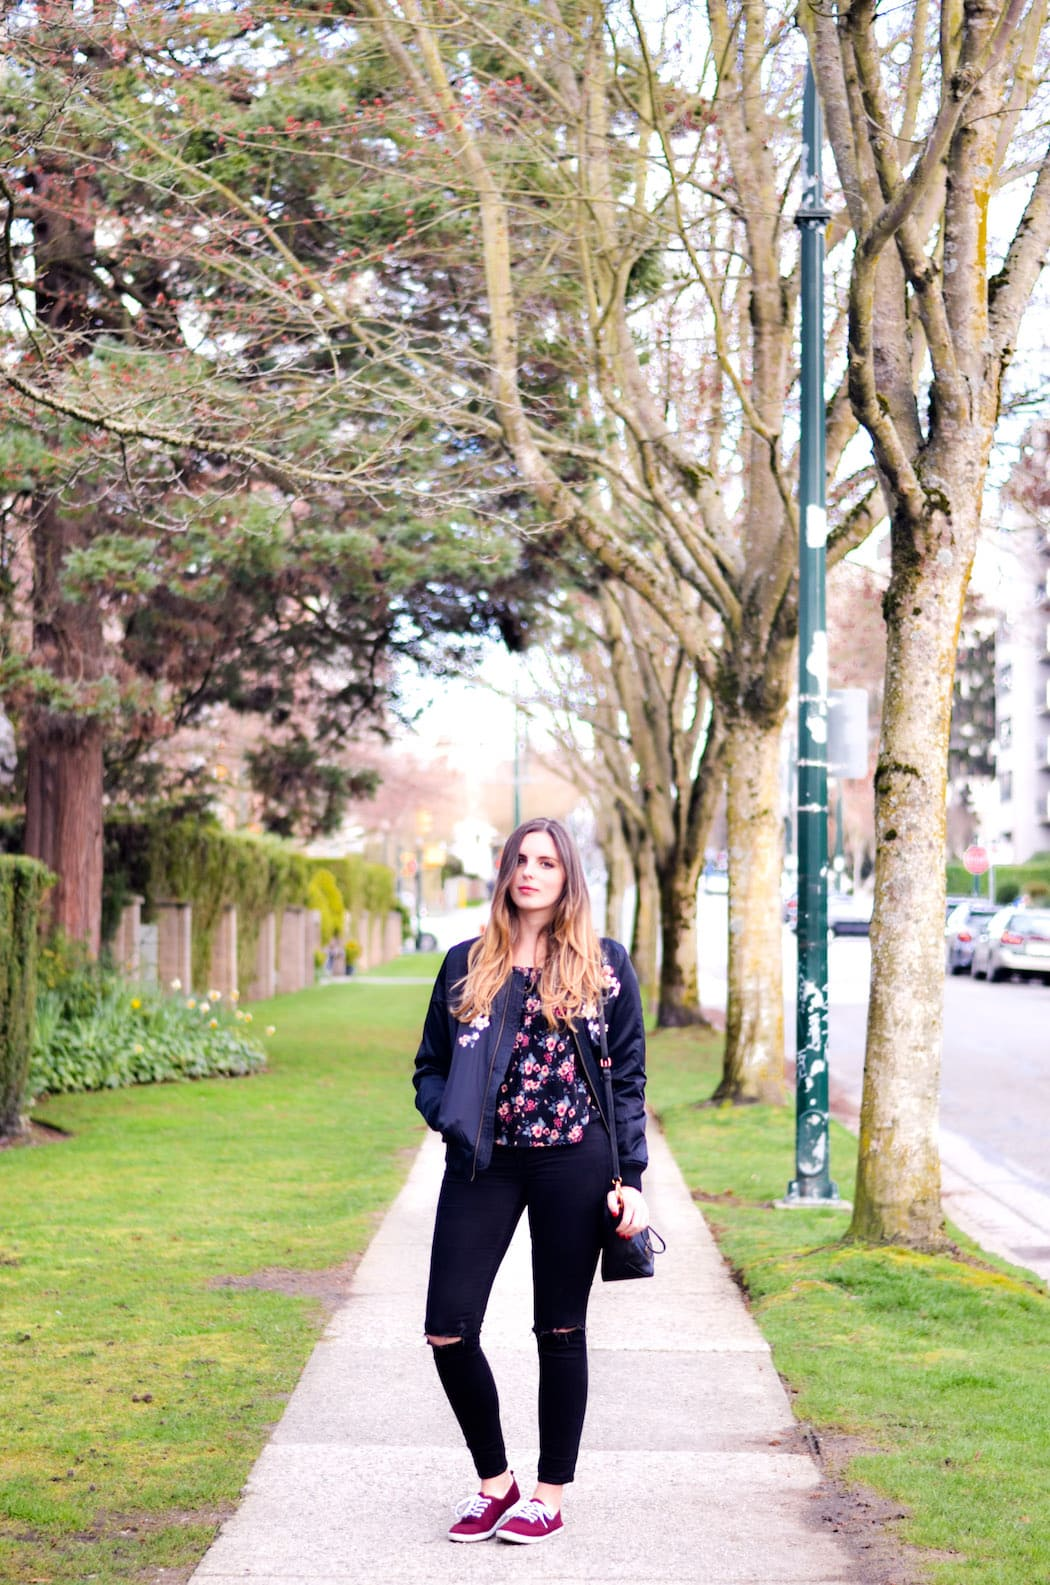 vancouver style blog, vancouver fashion blog, vancouver blog, vancouver fashion bloggers, best vancouver fashion blog, fashion blog, vancouver style blogger, vancouver style bloggers, vancouver lifestyle blog, vancouver travel blog, canadian fashion blog, canadian style blog, canadian travel blog, popular fashion blog, popular style blog, bomber jacket style, how to wear a bomber jacket, how to wear a bomber jacket 2017, how to wear a bomber jacket womens, how to wear a bomber jacket girl